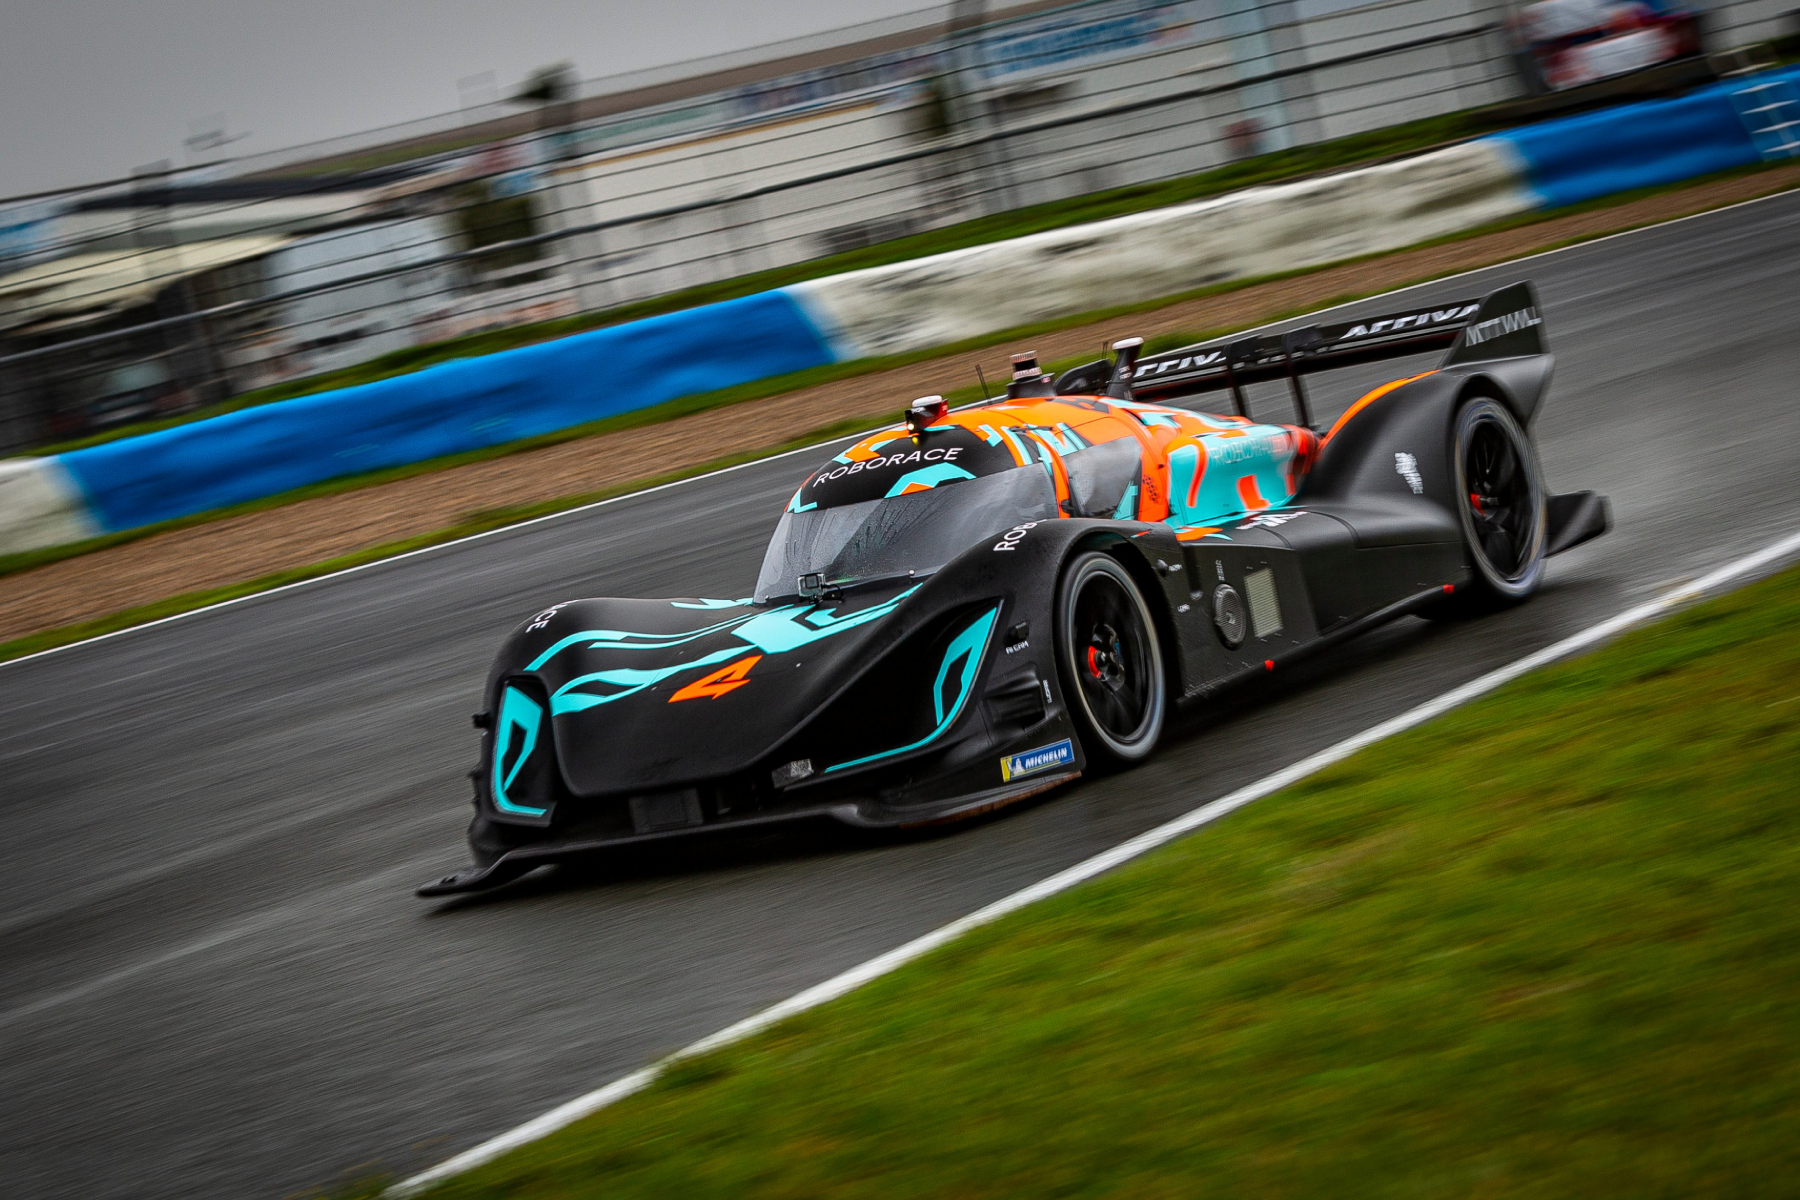 Roborace-Test-Run-Speed-Blue-Orange-Livery